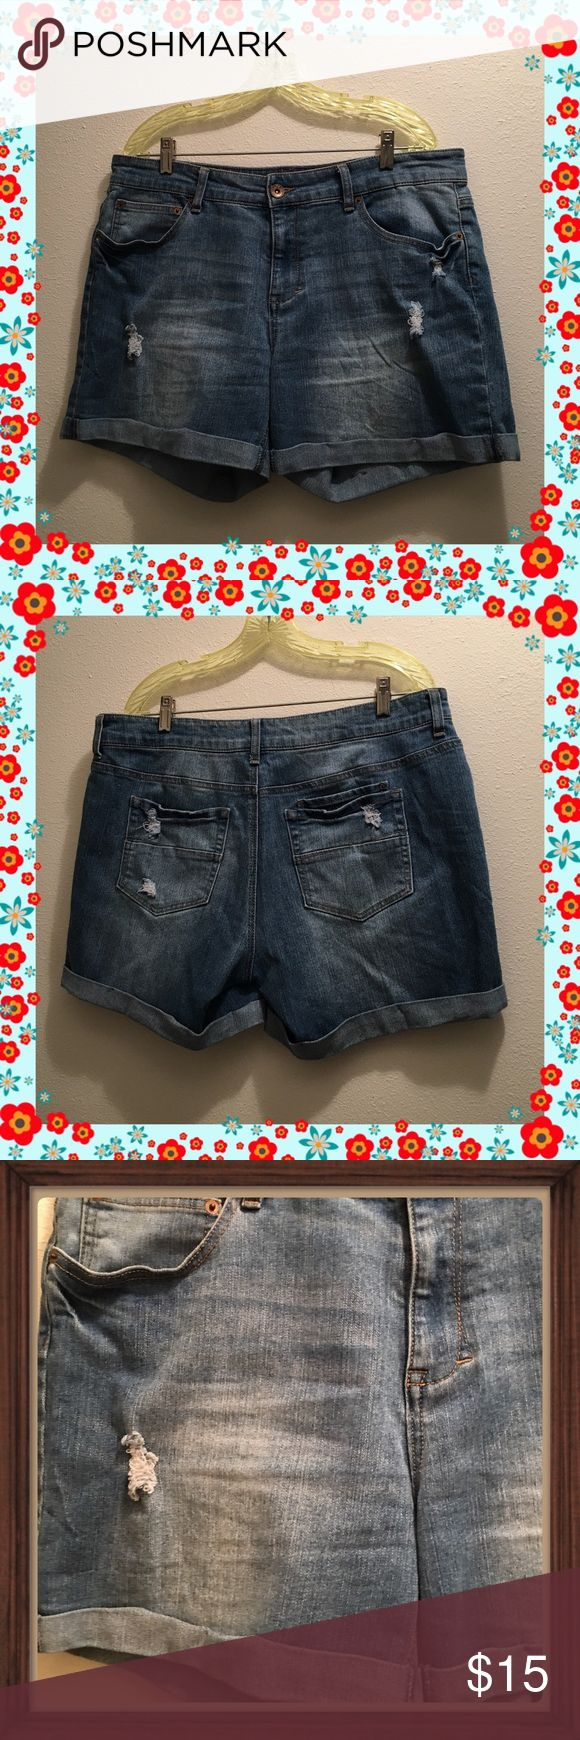 Like New Bongo Rolled Jean Shorts SZ 15 Purchased in a 15 & 13, walked around the house with these on, took them off and only wore the 13's so you could consider them like New coming right from the store. They are made exactly as they are, rolled up legs, I forgot I pinned them up so they wouldn't unroll in the washer, will remove the little safety pins before sending out lol. They are a light blue, again the lighting in this house is terrible. BONGO Shorts Jean Shorts